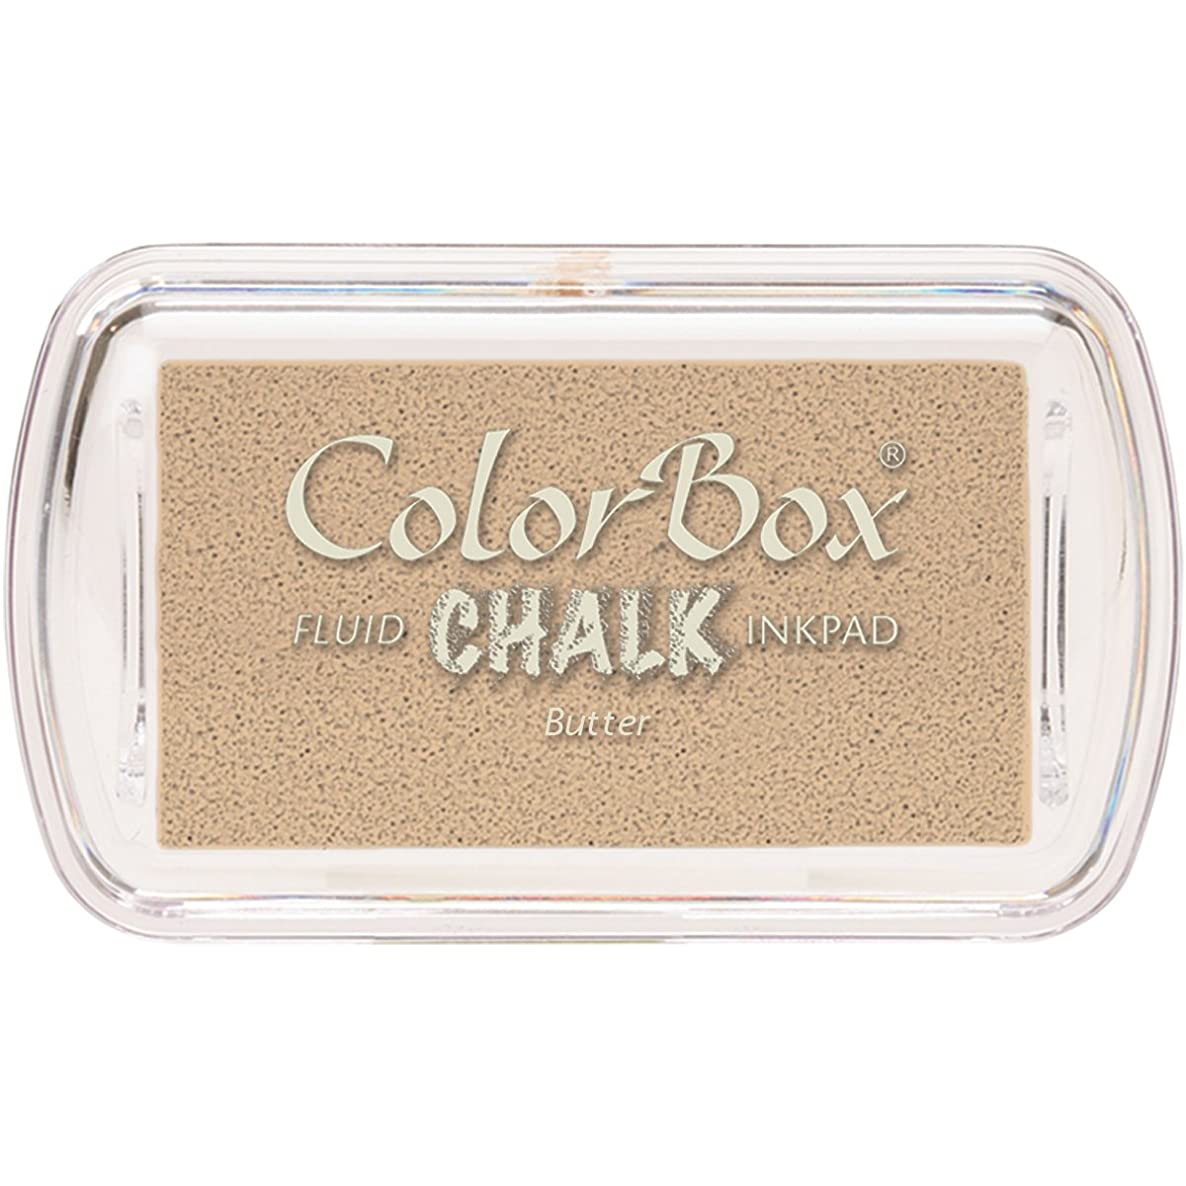 CLEARSNAP ColorBox Fluid Chalk Ink Pad, Mini, Butter